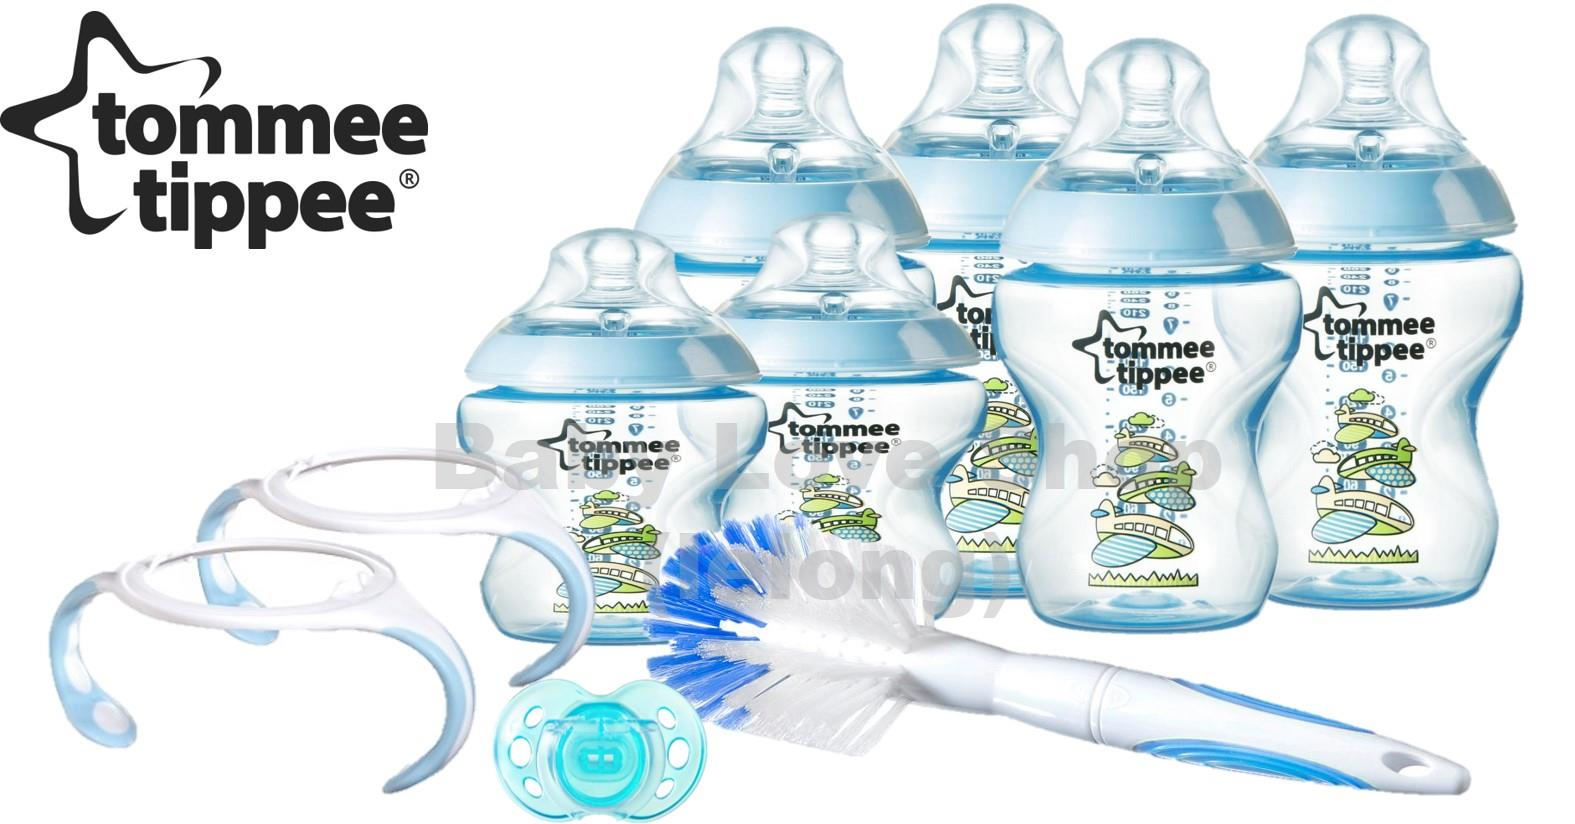 Tommee tippee coupons 2019